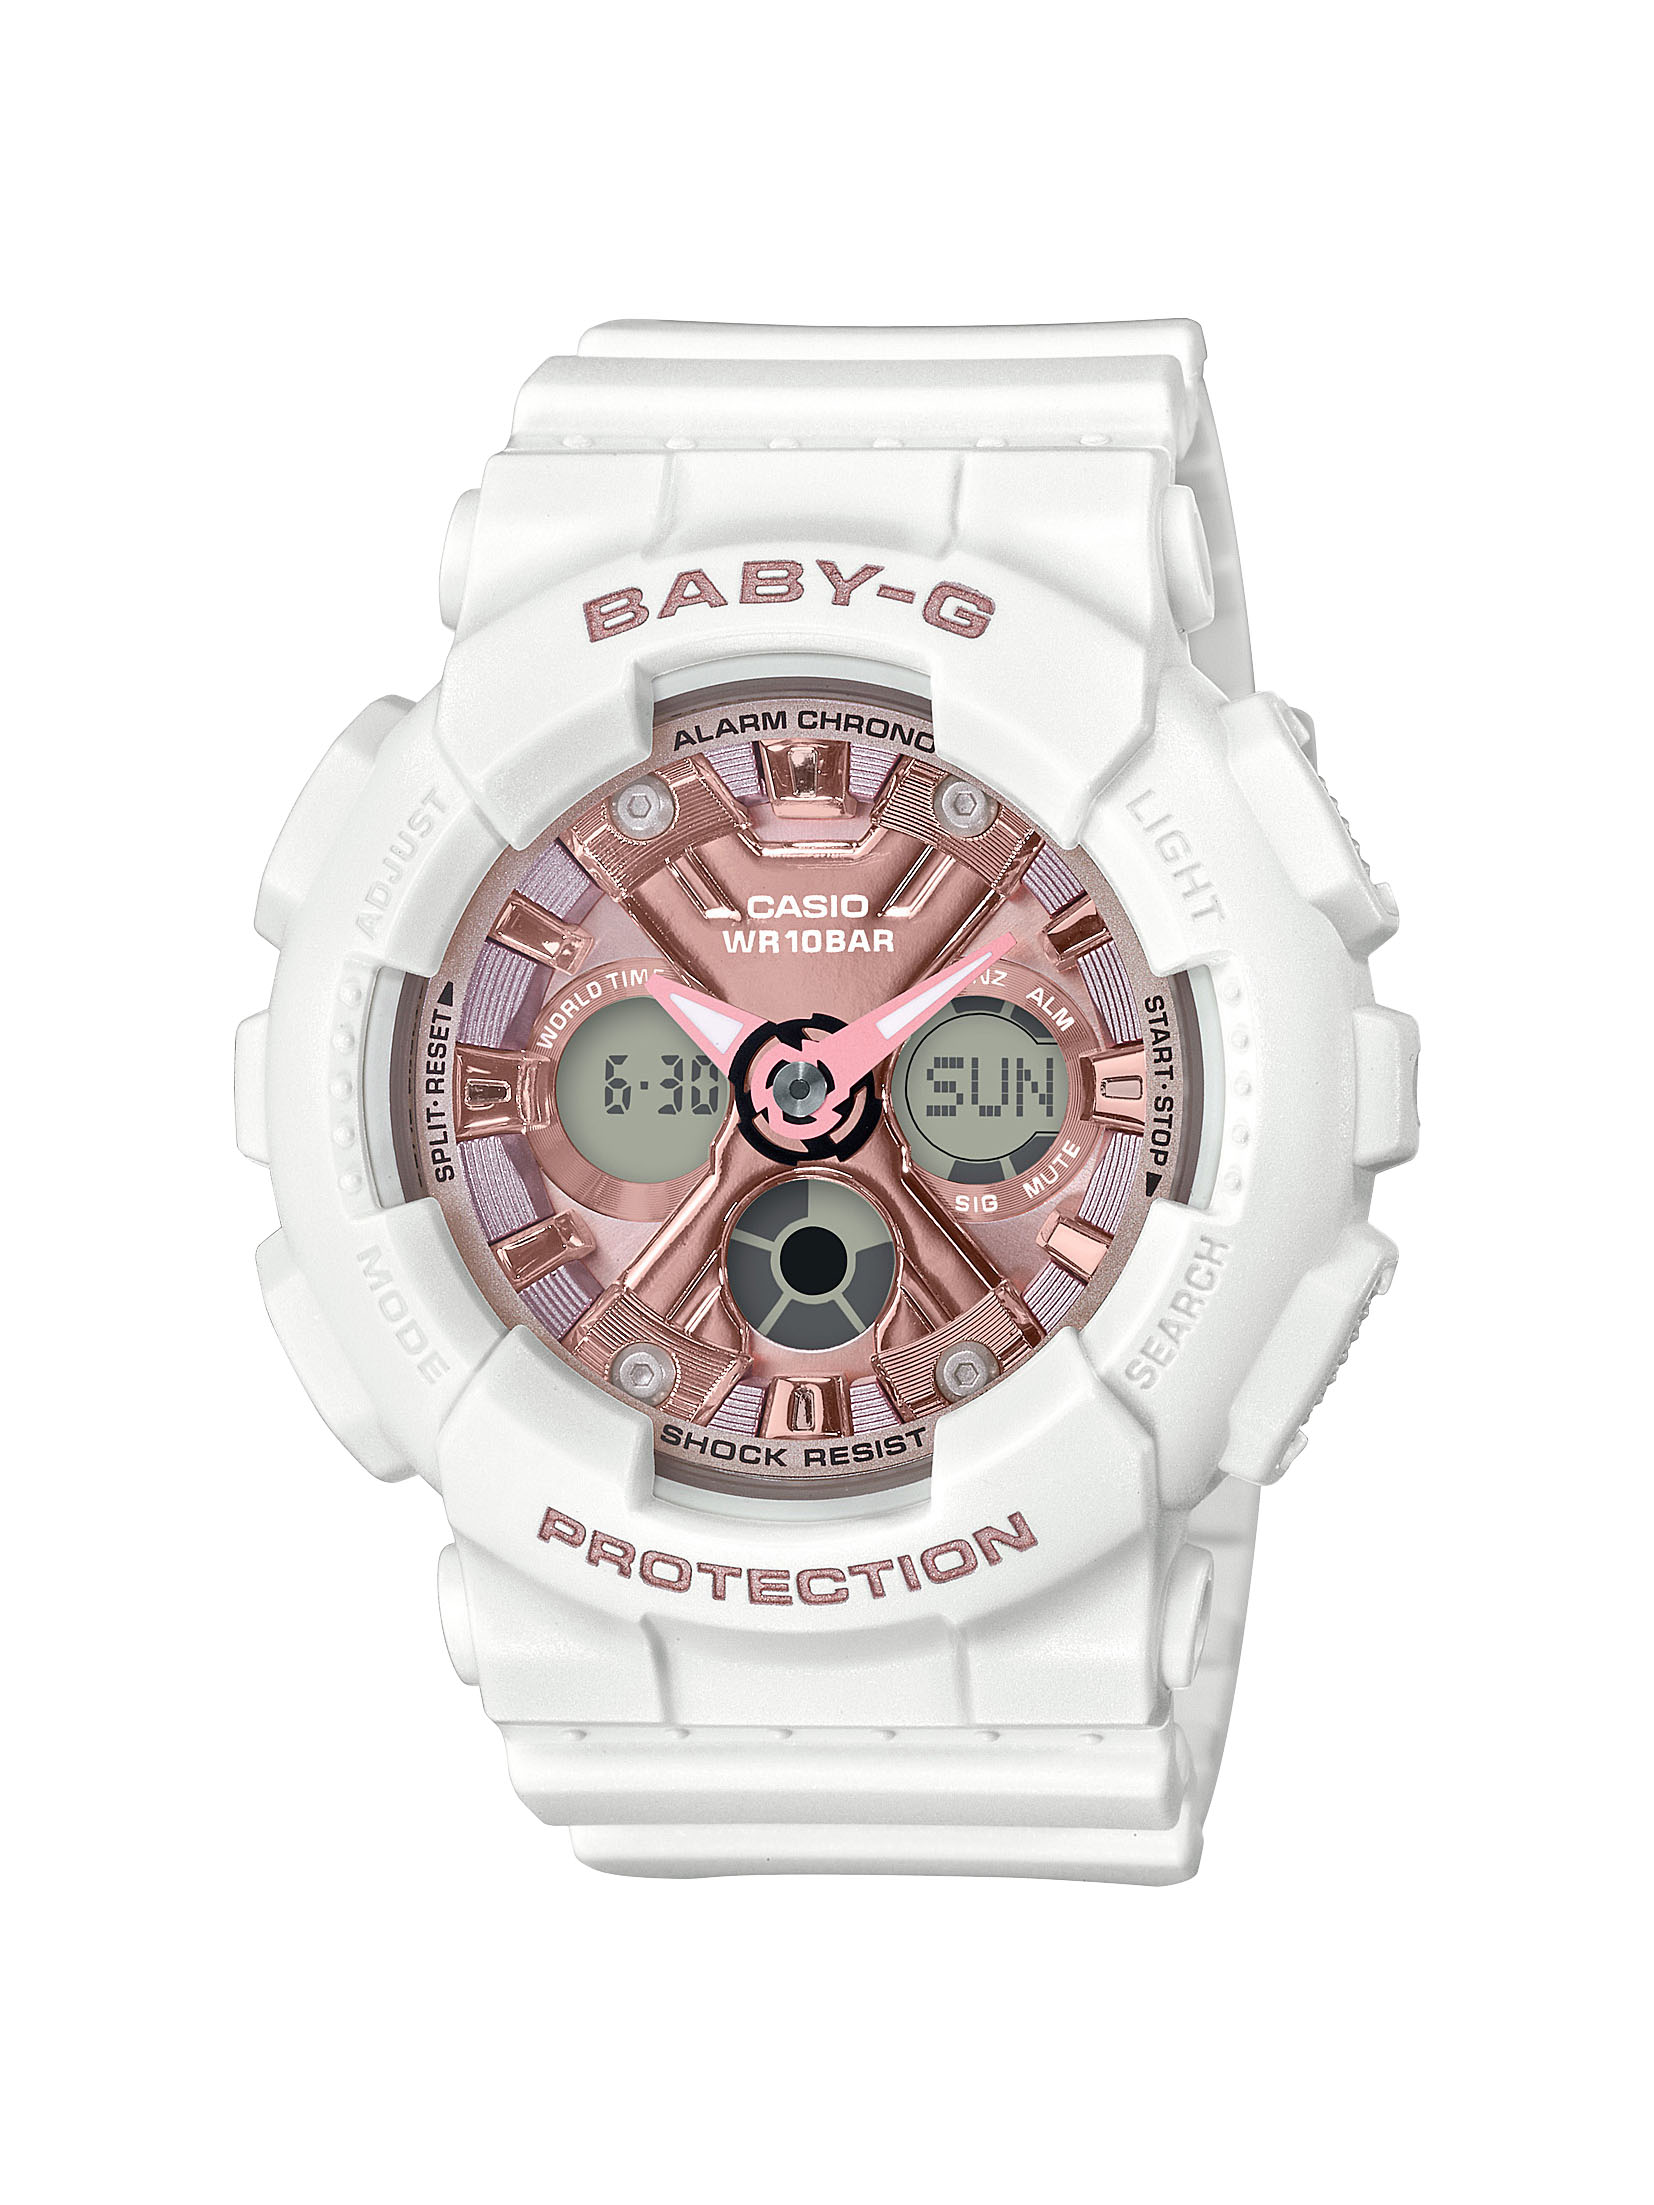 Casio Baby-G BA-130-7A1DR White Resin Womens Watch